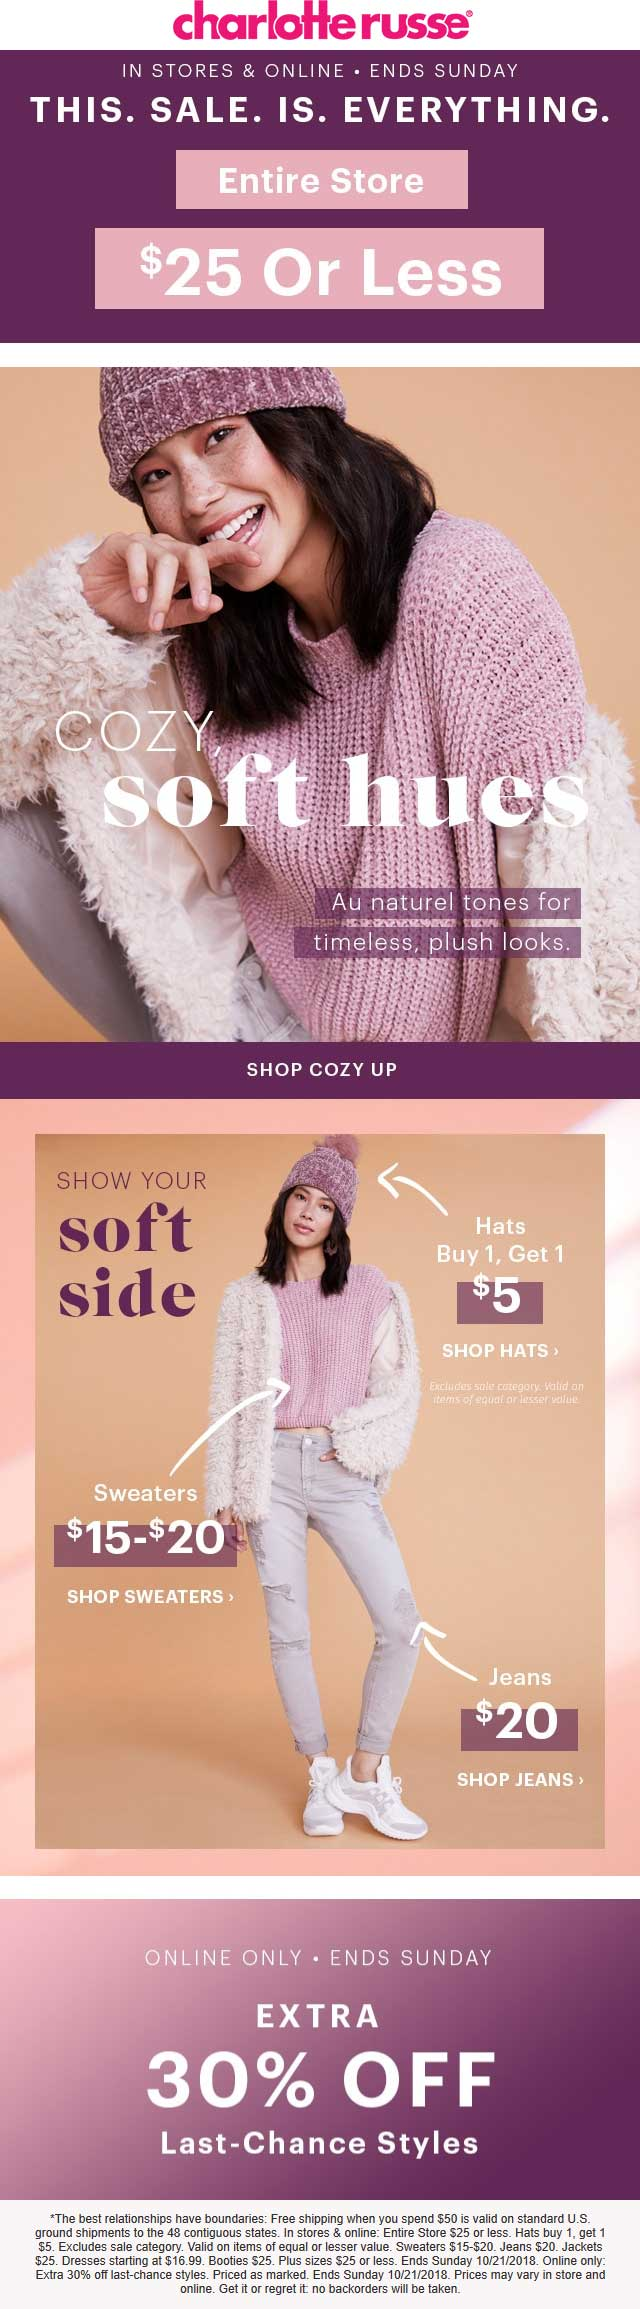 Charlotte Russe coupons & promo code for [August 2020]